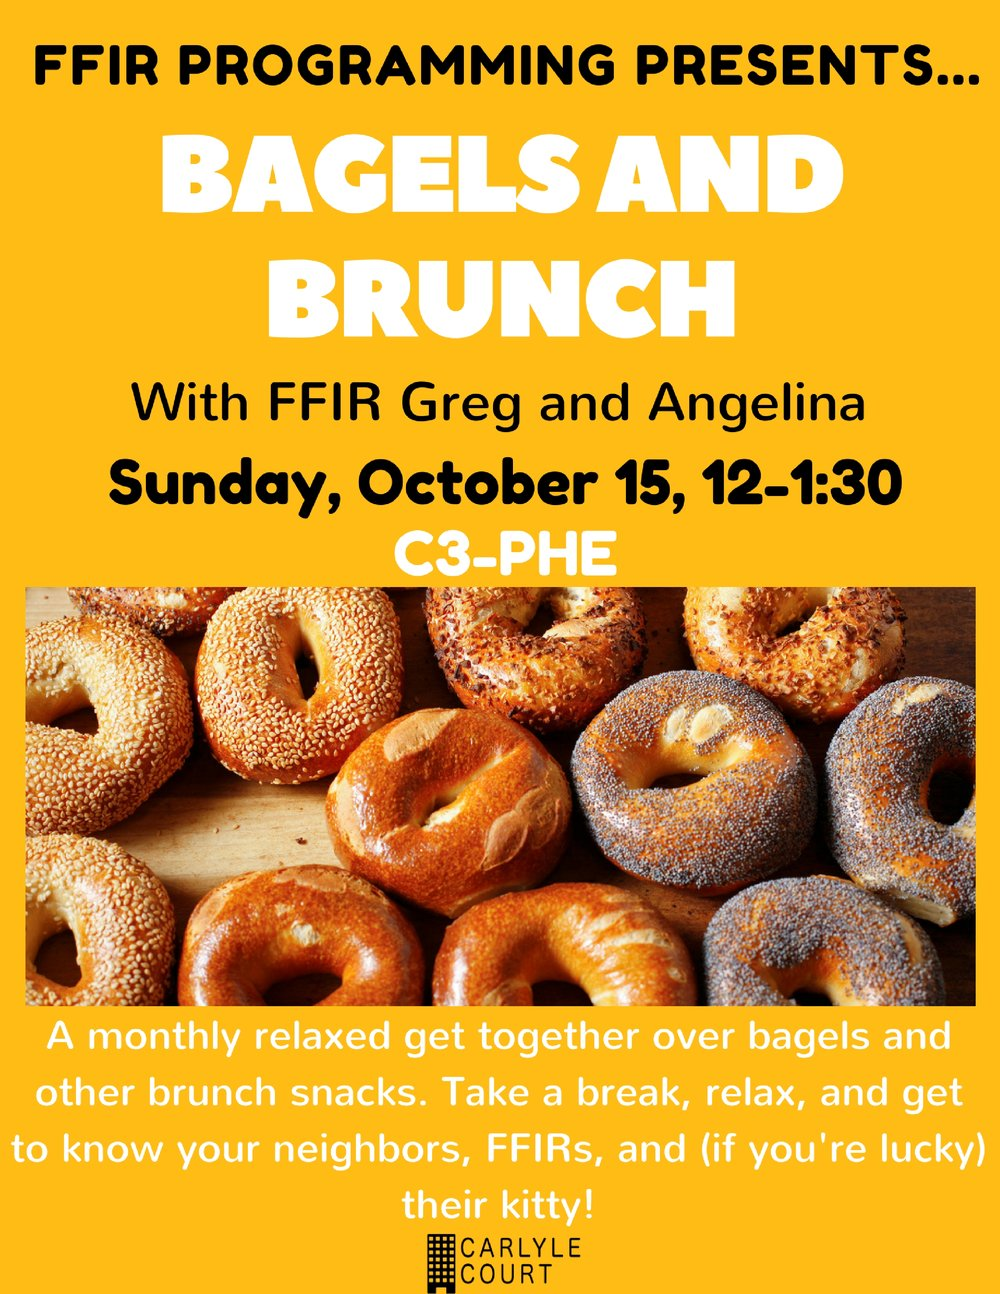 Bagels and brunch - 2.jpg